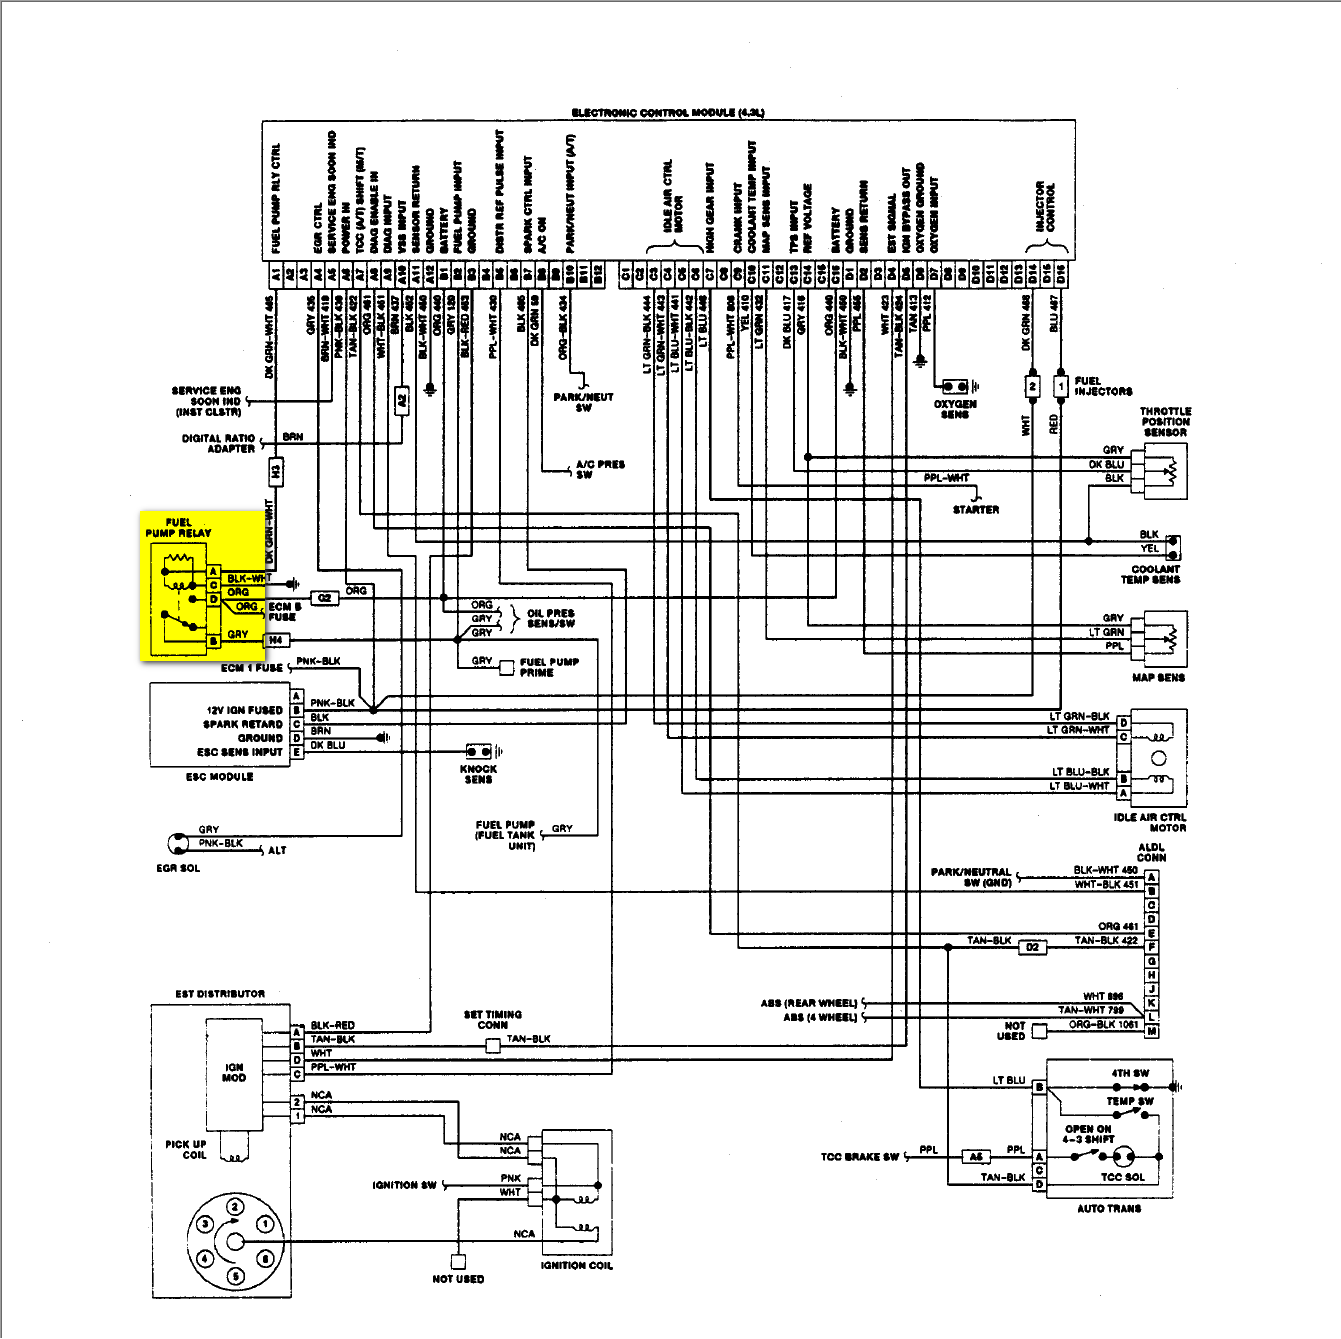 1991 Chevy G20 Van Wiring Diagram Bege Wiring Diagram